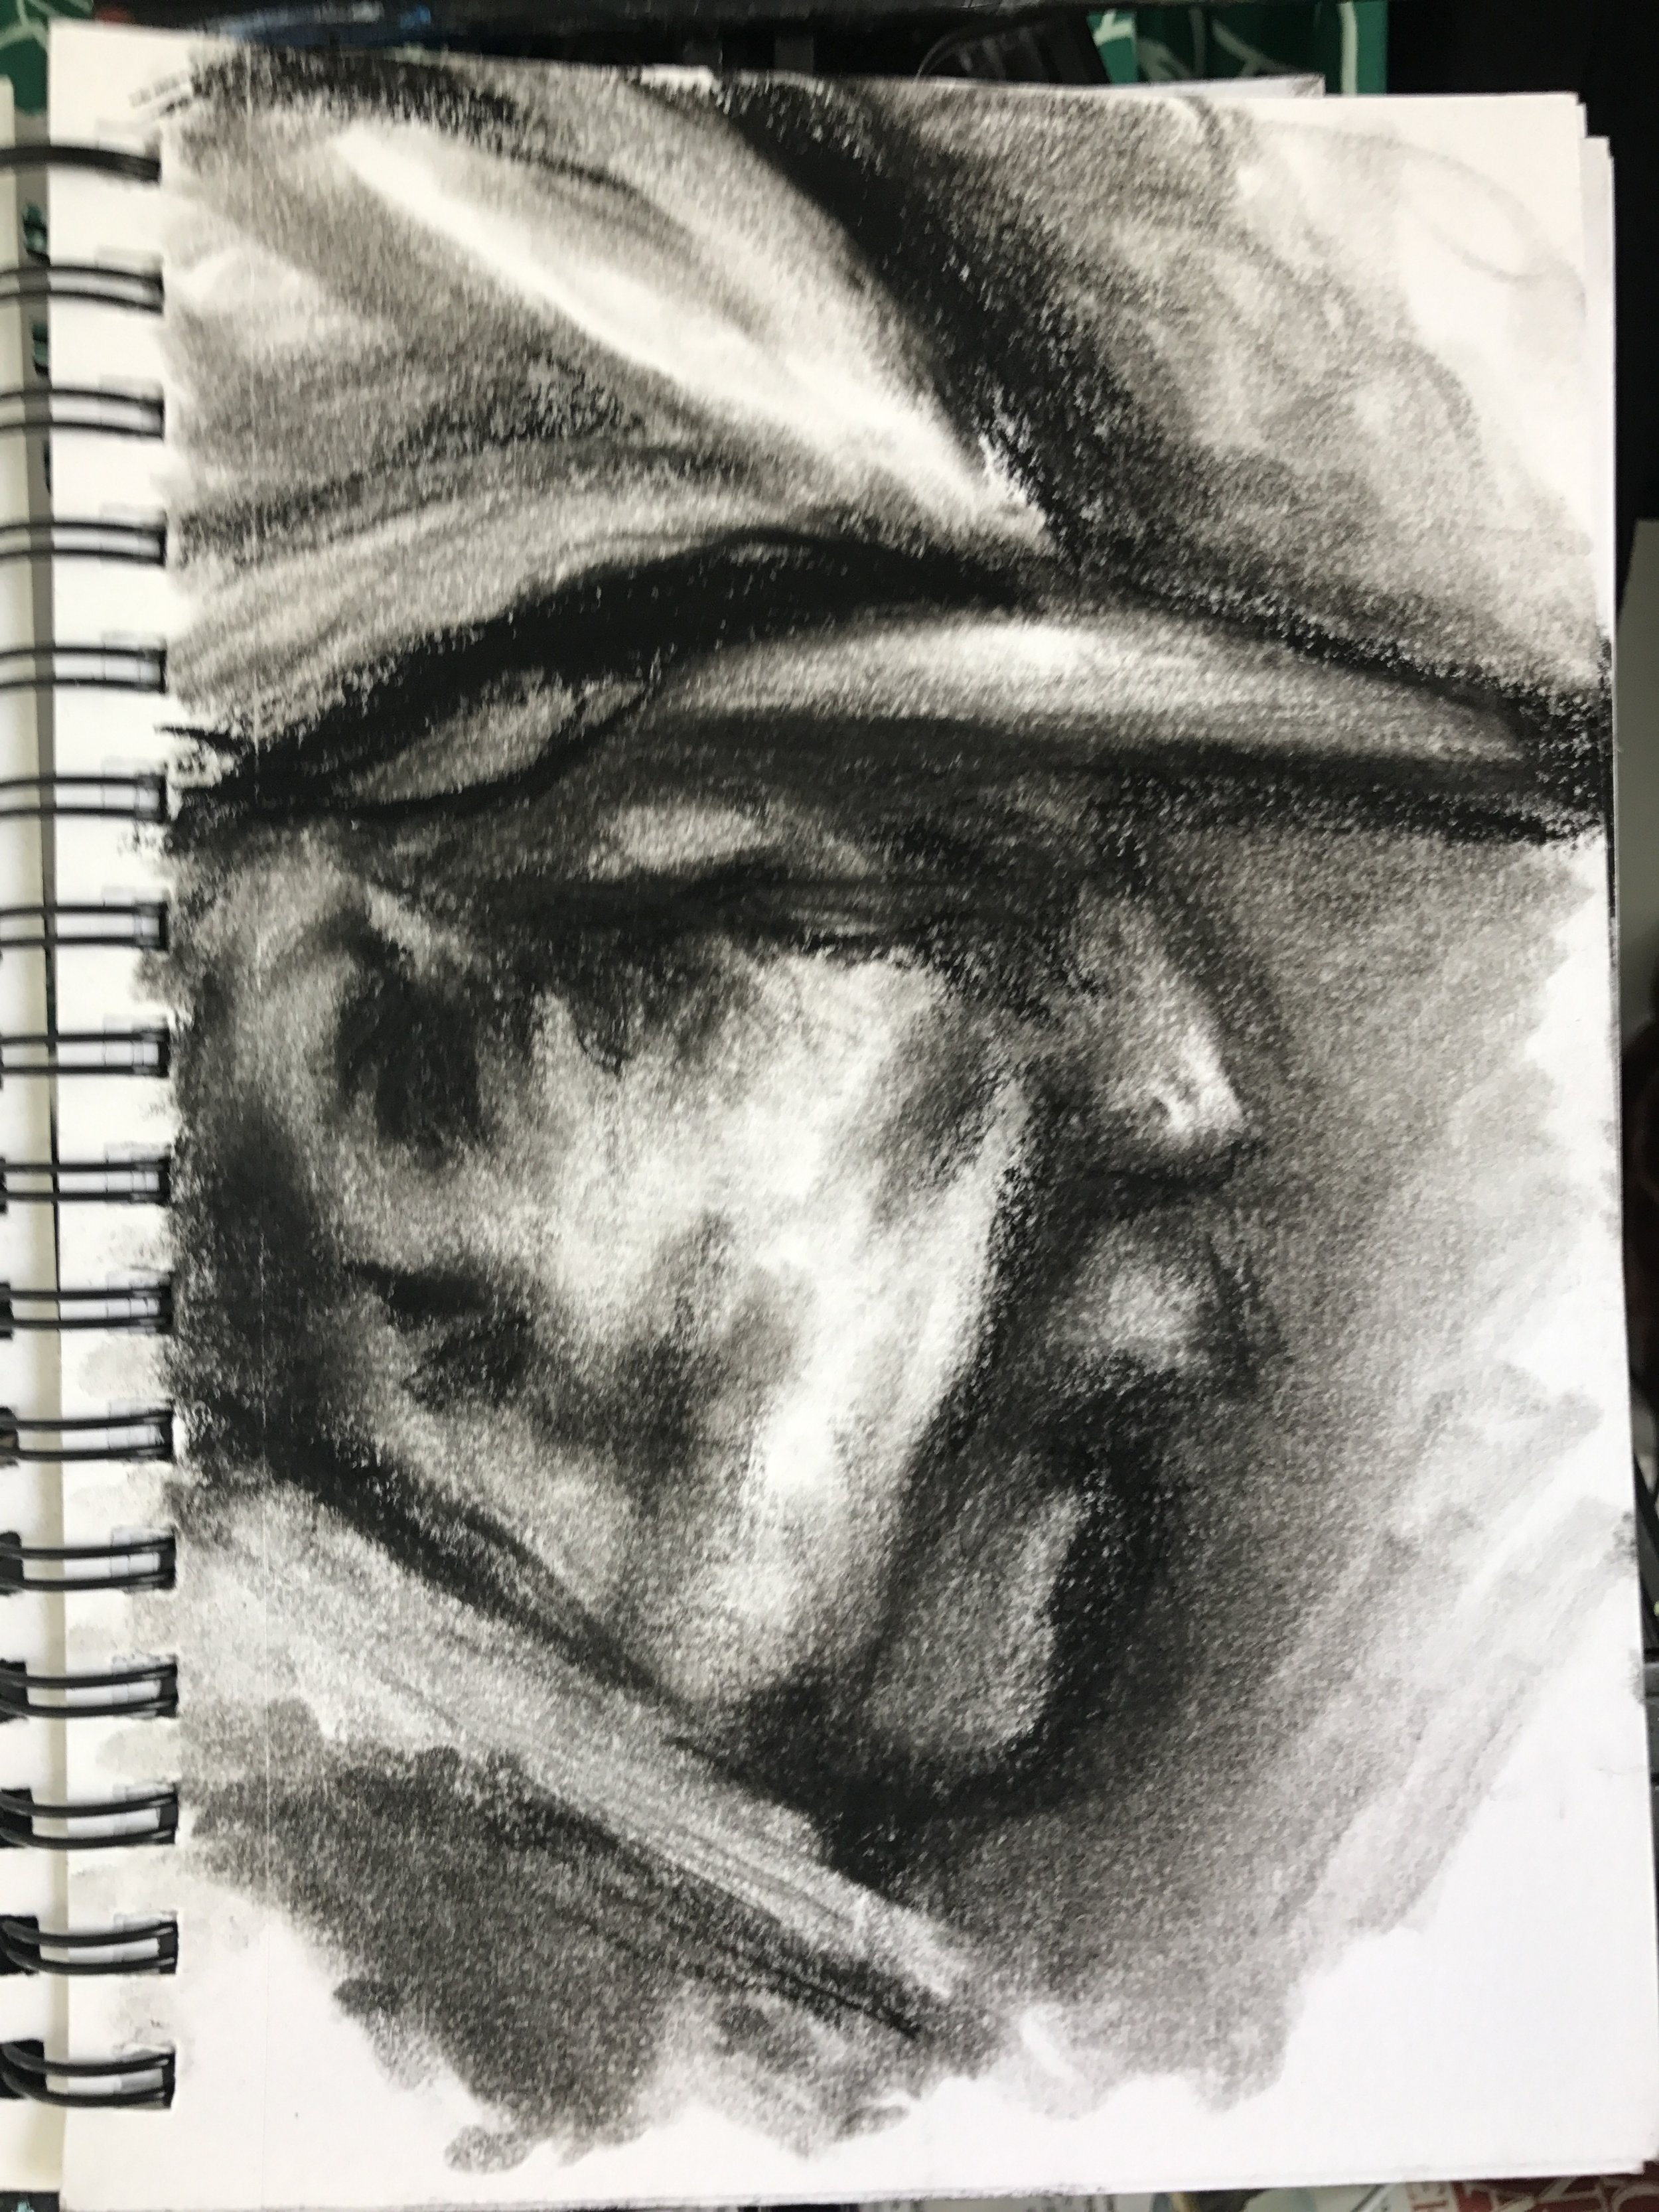 Charcoal sketch of Dave, our host